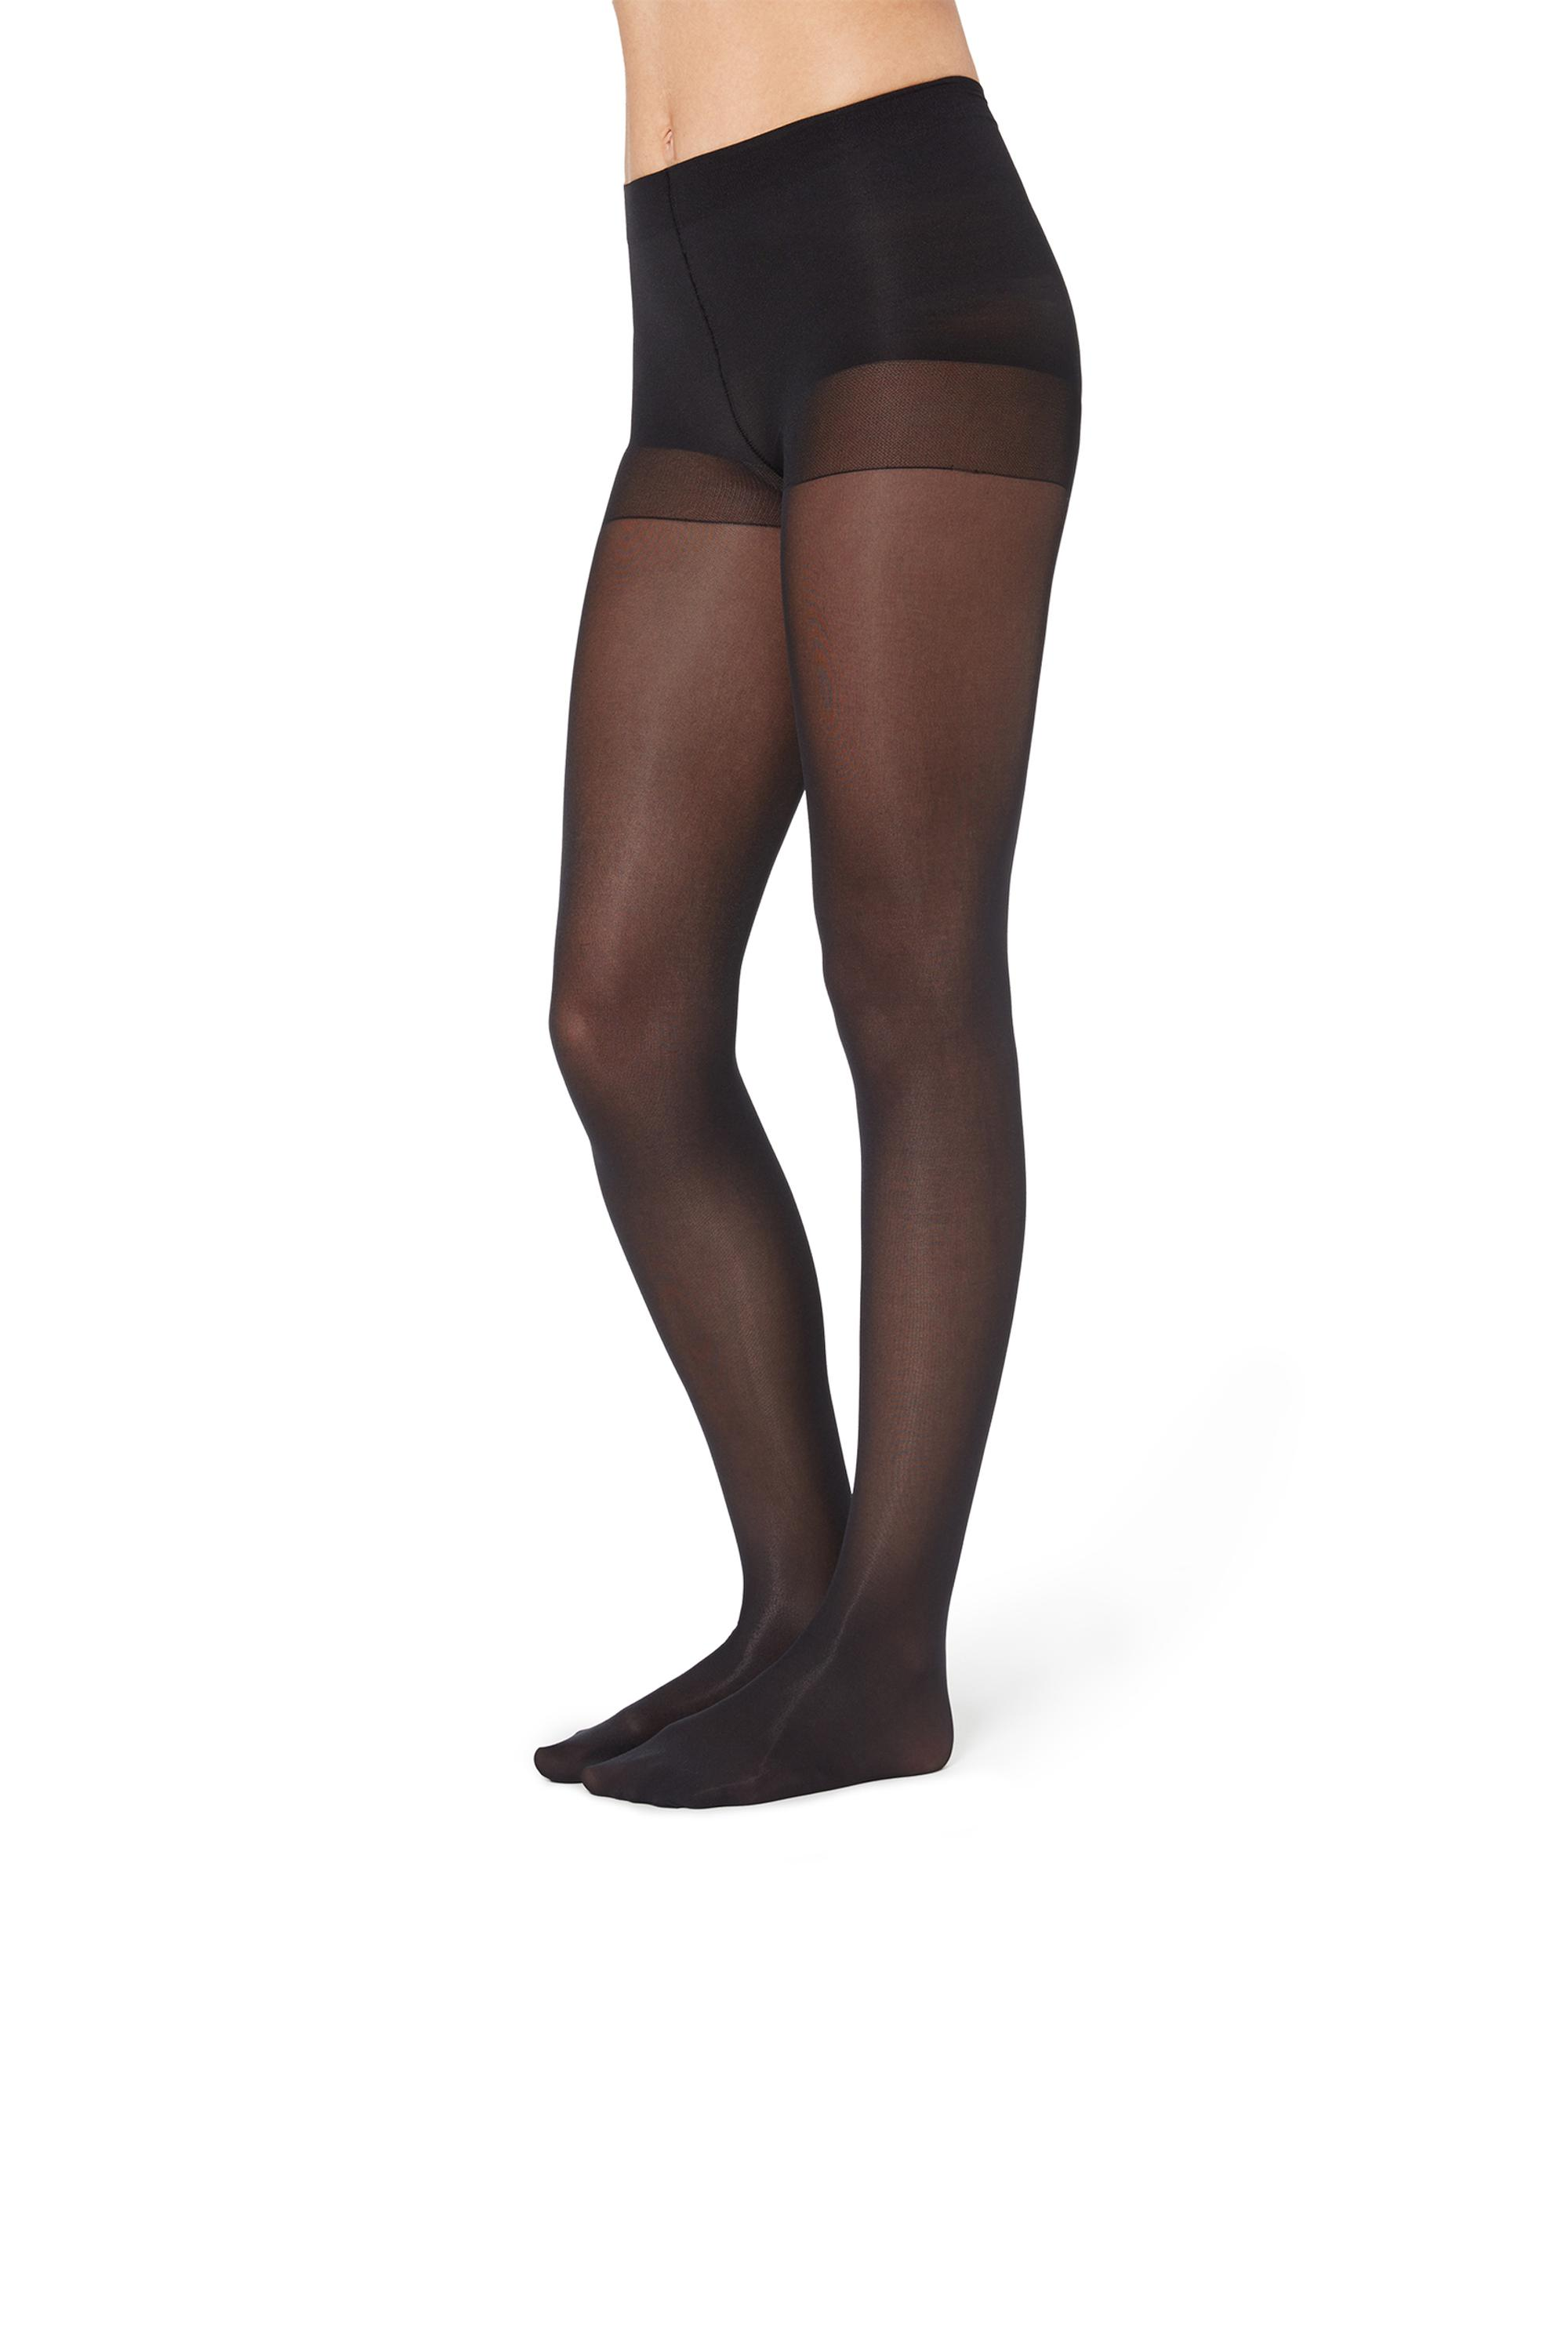 41c6a7465 50 Den Opaque Control Tights - Tezenis